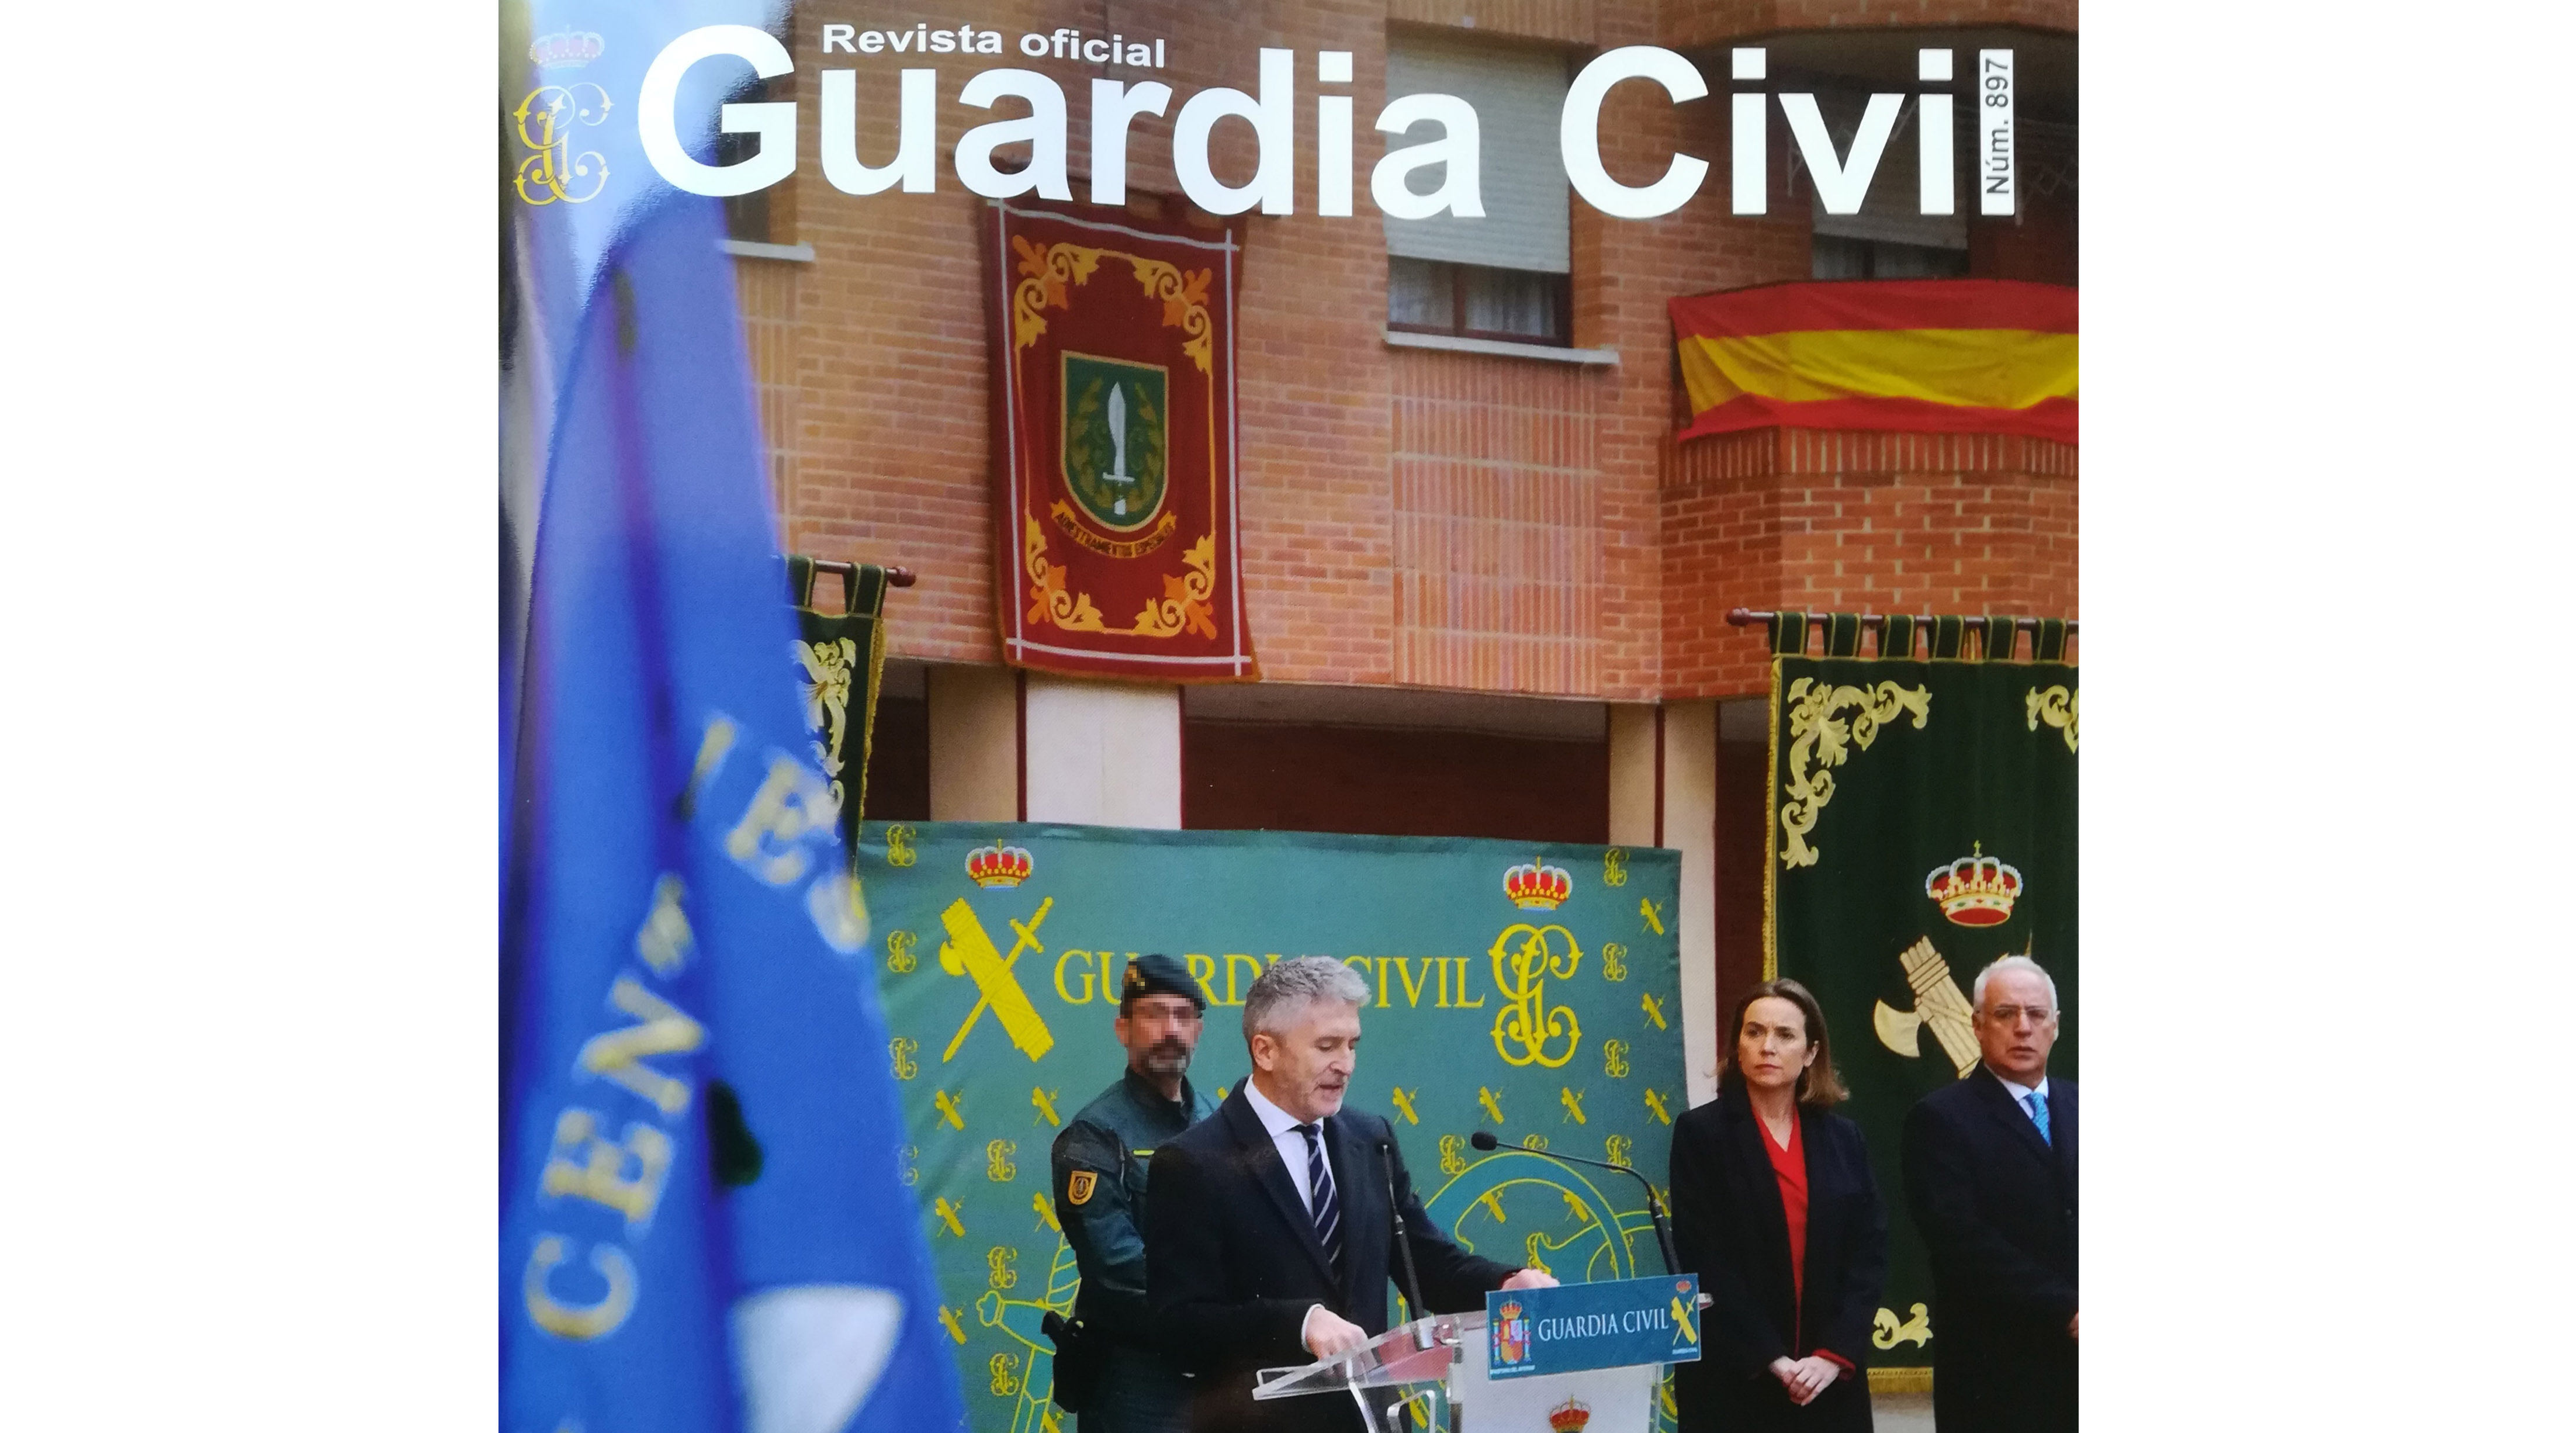 portada revista oficial Guardia Civil